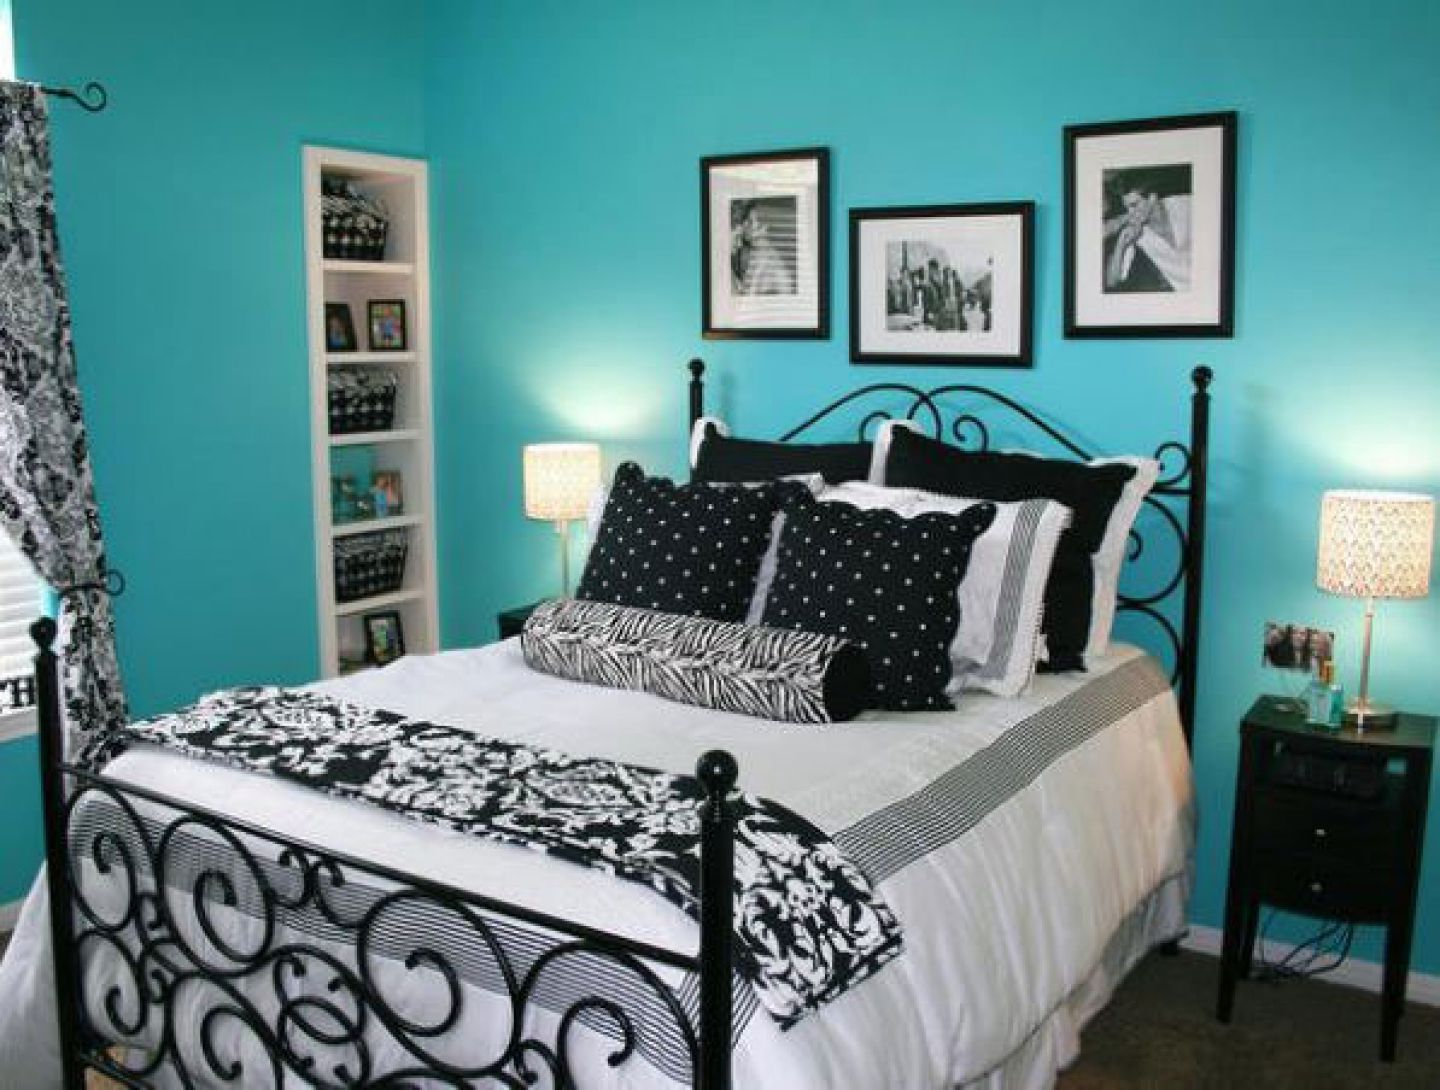 Black and white bedrooms with a splash of color - Wonderful Blue Themes Teenage Girl Room Ideas With Elegant Black Metal Bed Frame That Have White Bedding Complete With The Pillows And Beautiful Three